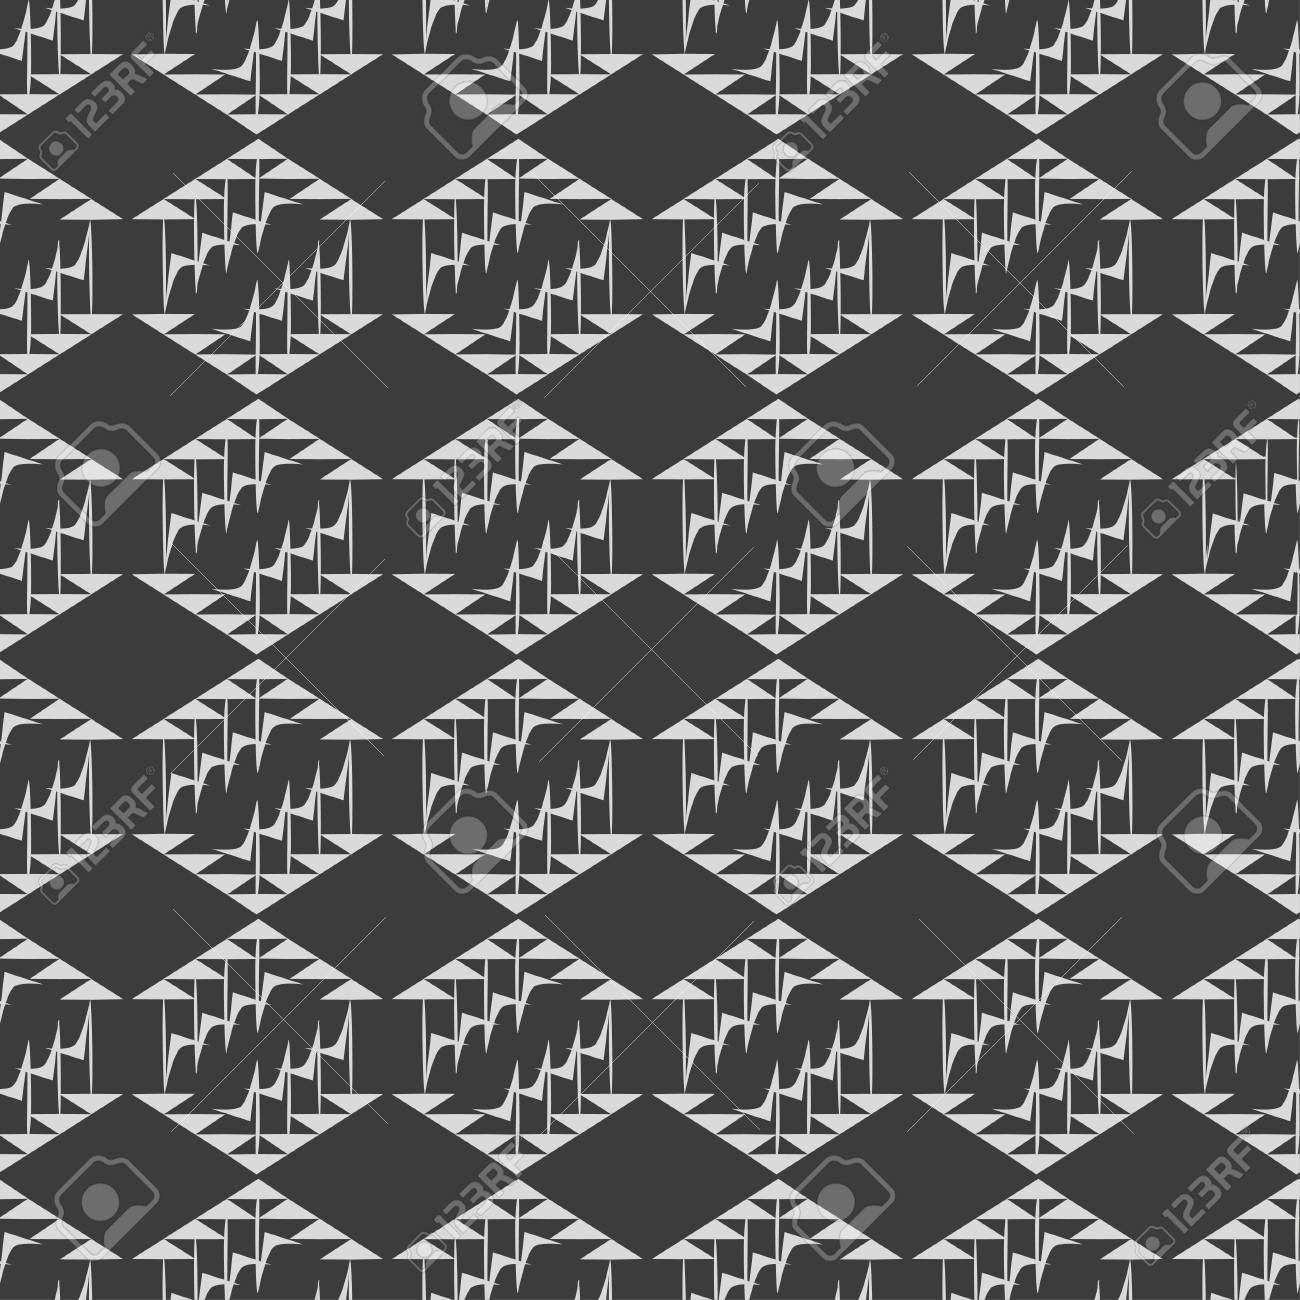 Black And White Geometric Seamless Pattern With Diamonds And